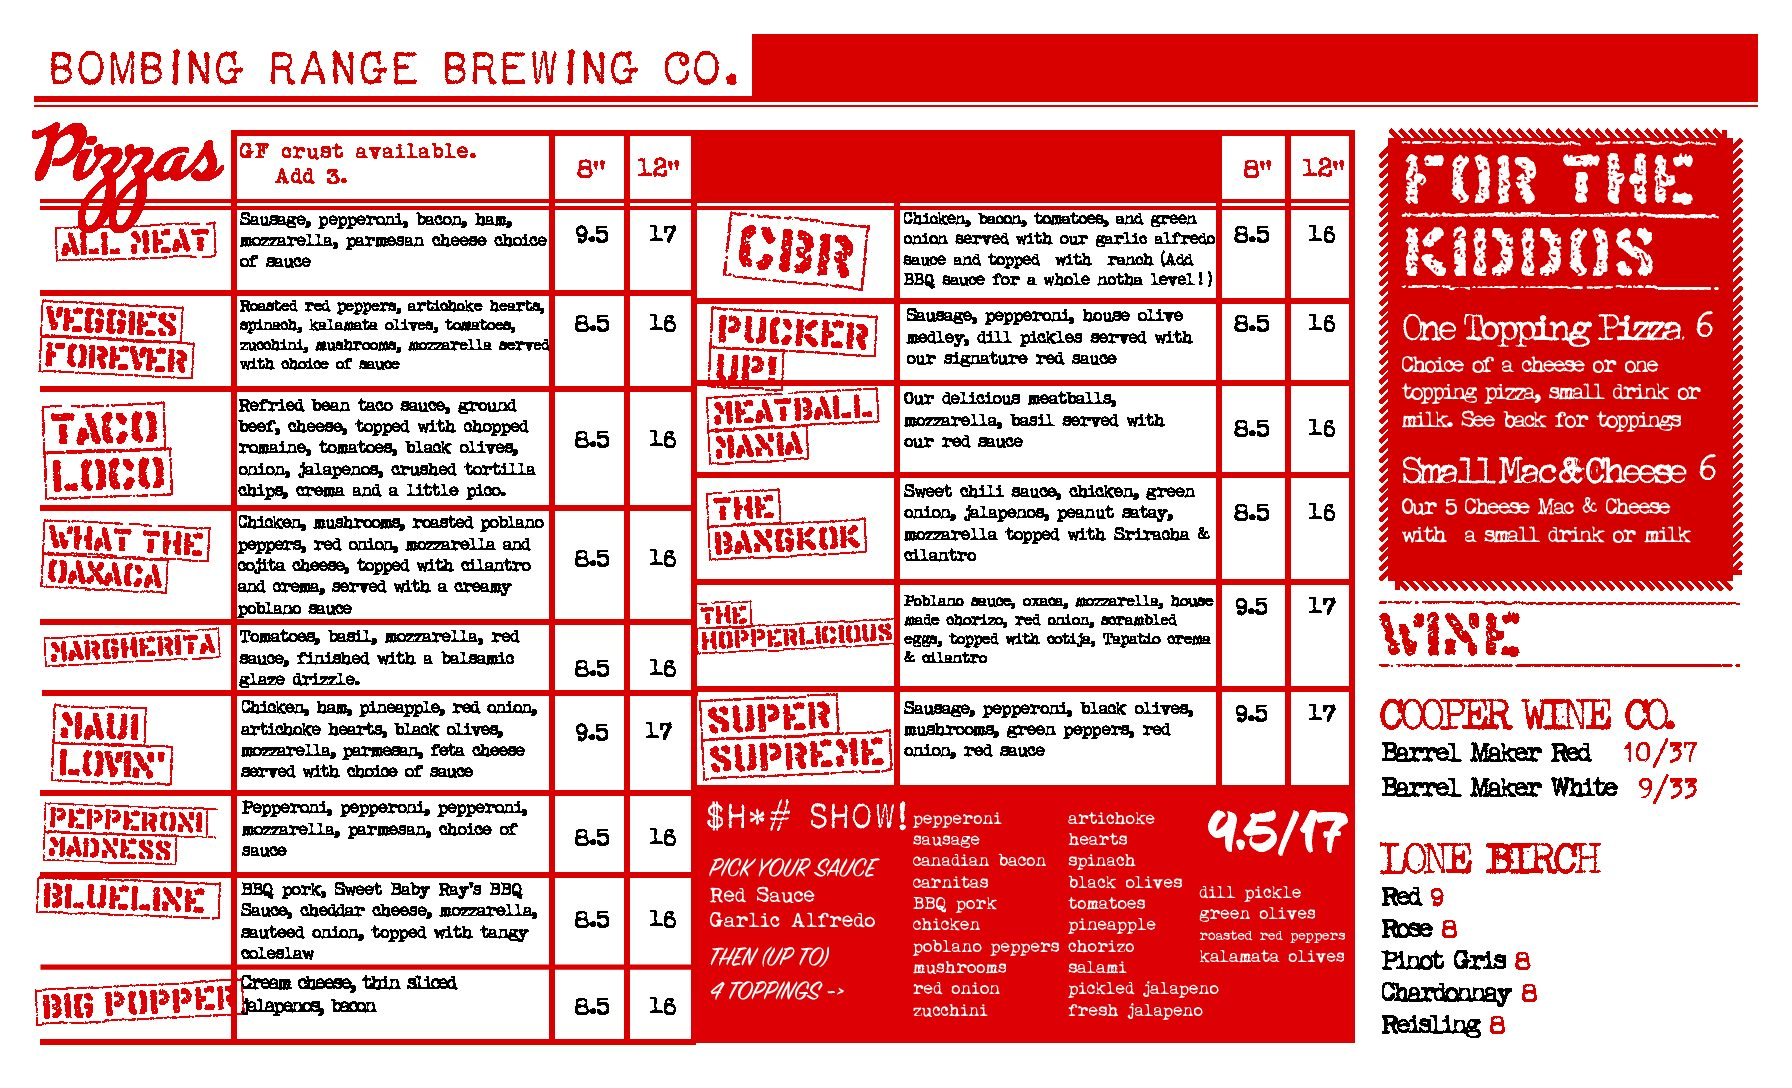 Bombing Range Brewing Company Menu